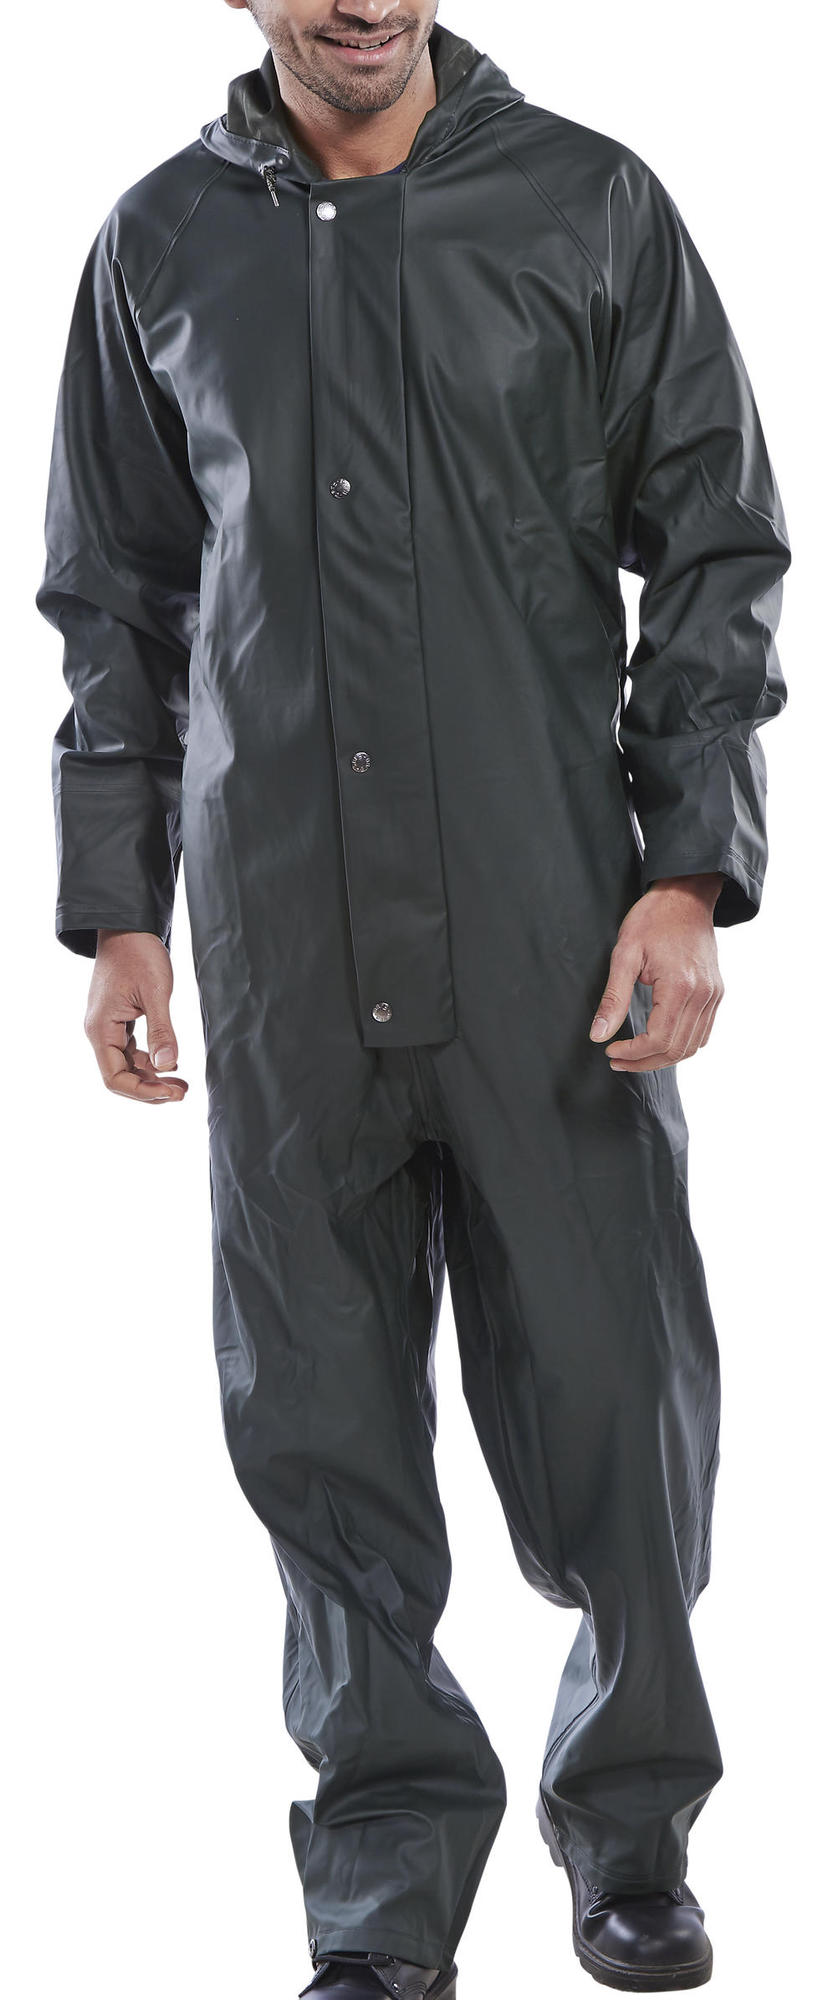 SUPER B-DRI COVERALLS - SBDC